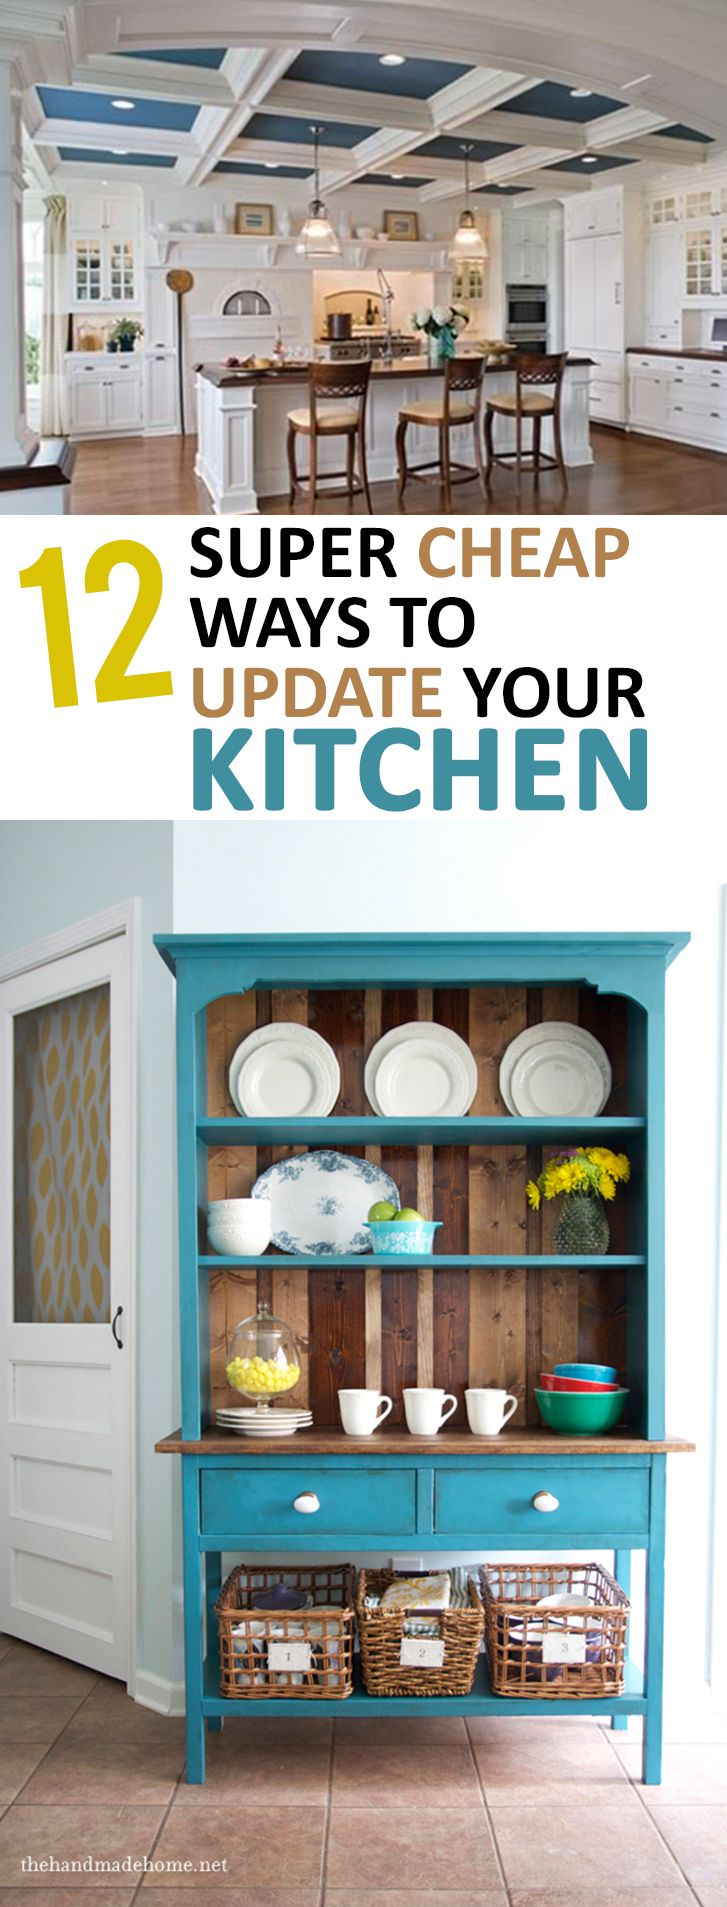 12 Ways to Update Your Kitchen | Pinterest | Kitchens, Kitchen decor ...